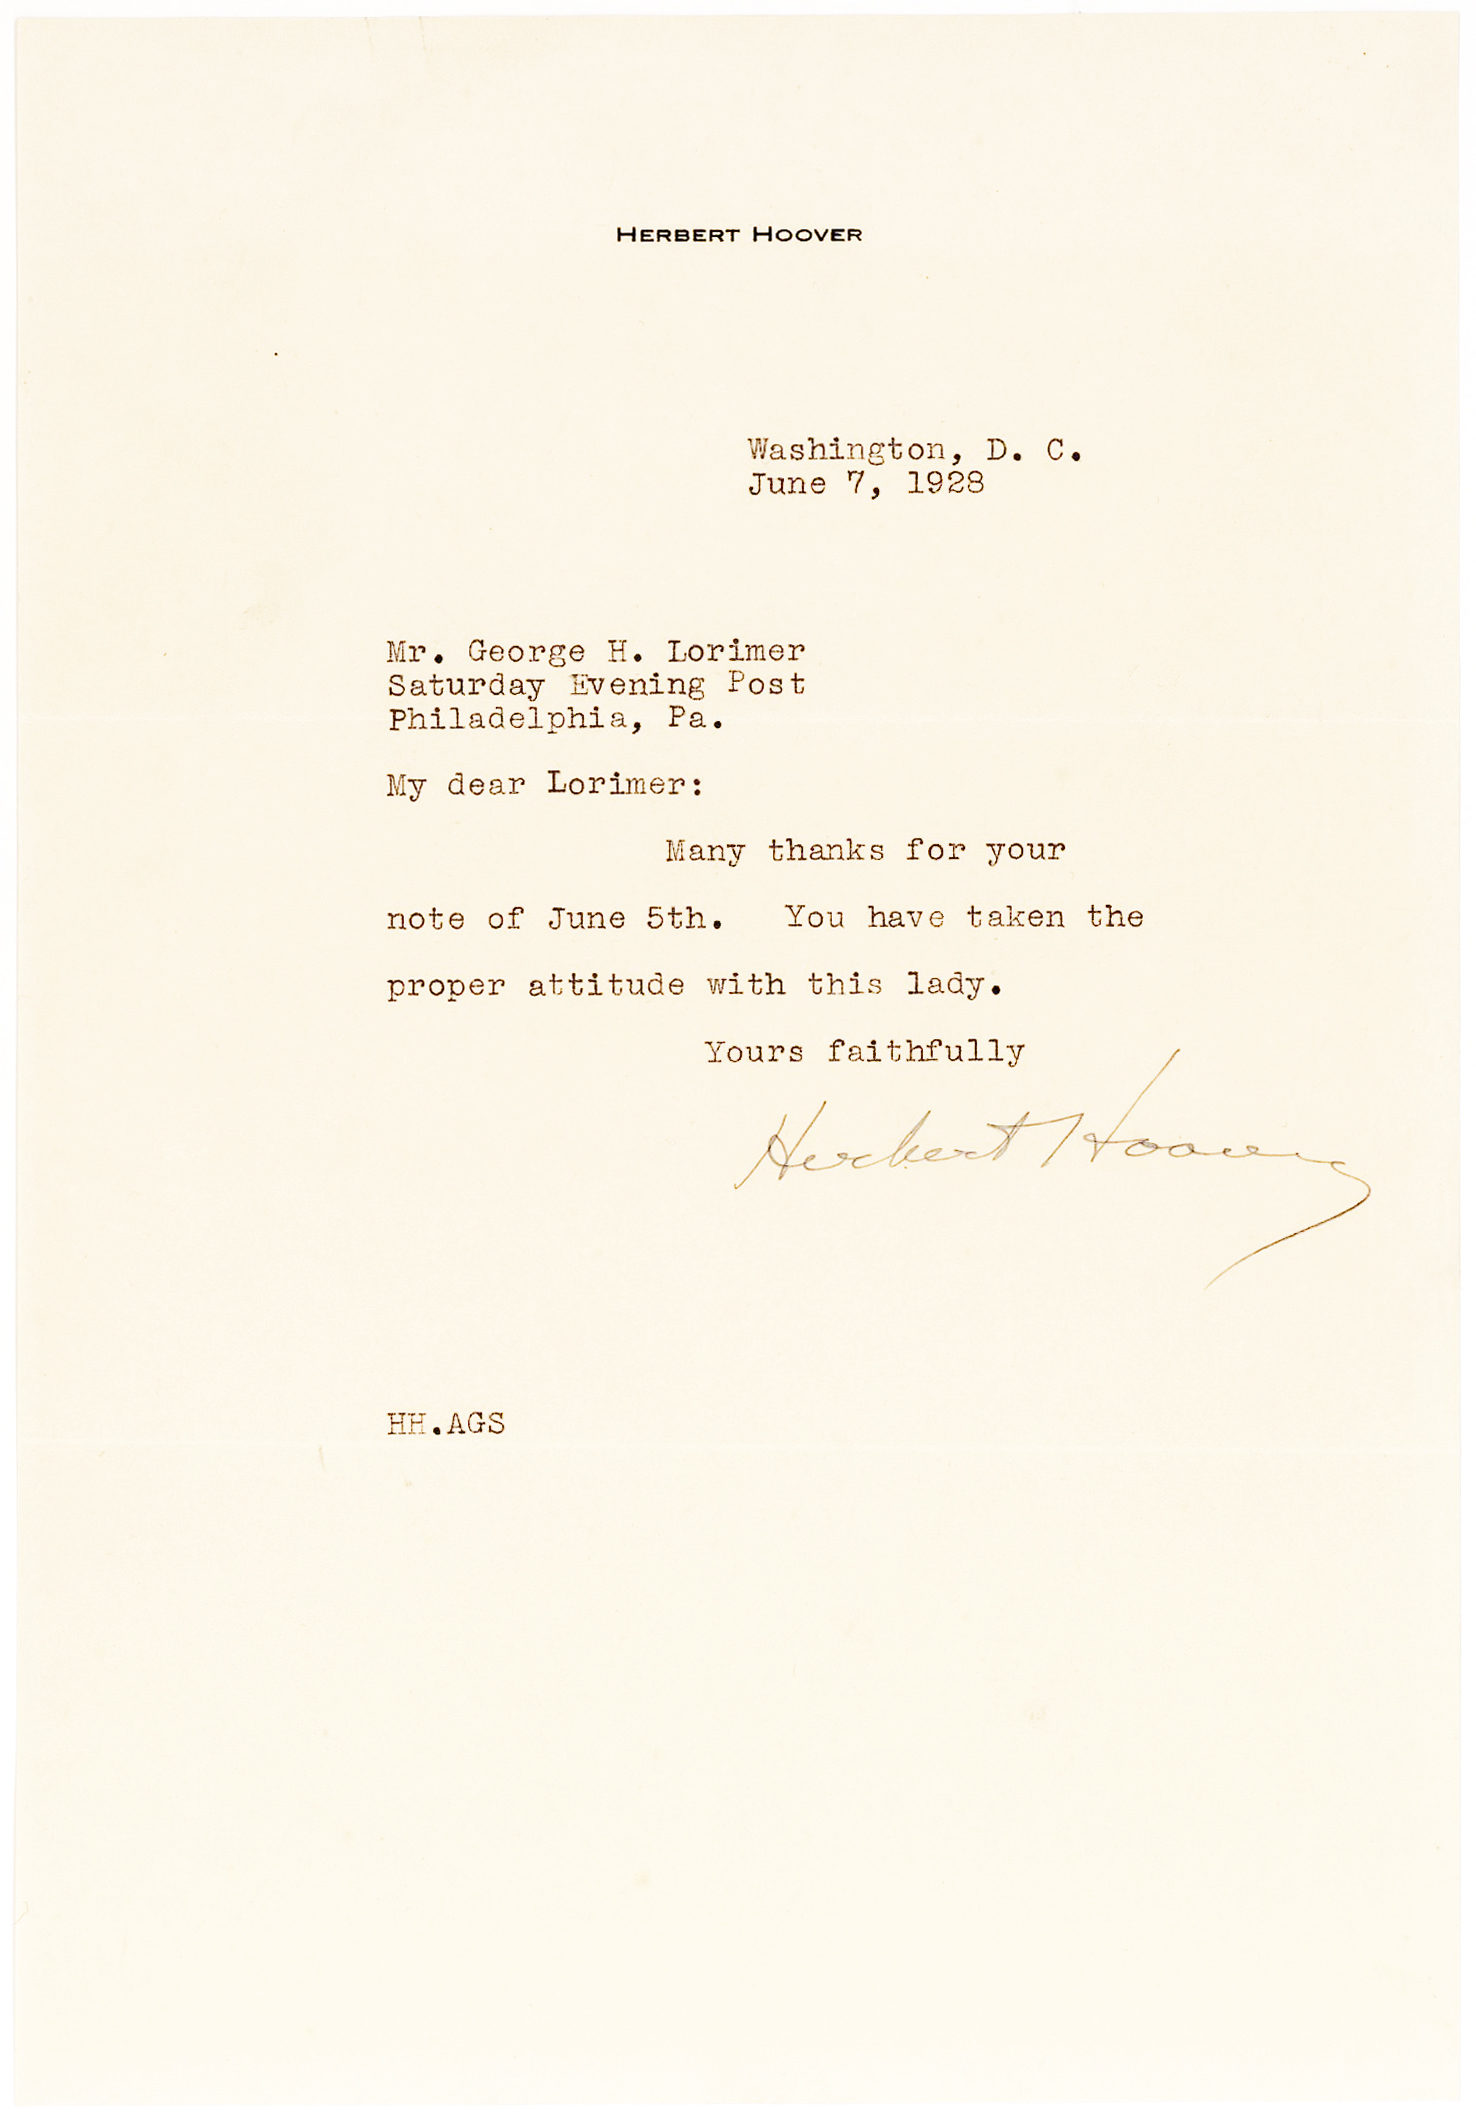 Letter of Thanks on his Personal Stationery to The Saturday Evening Post's Editor George H. Lorimer